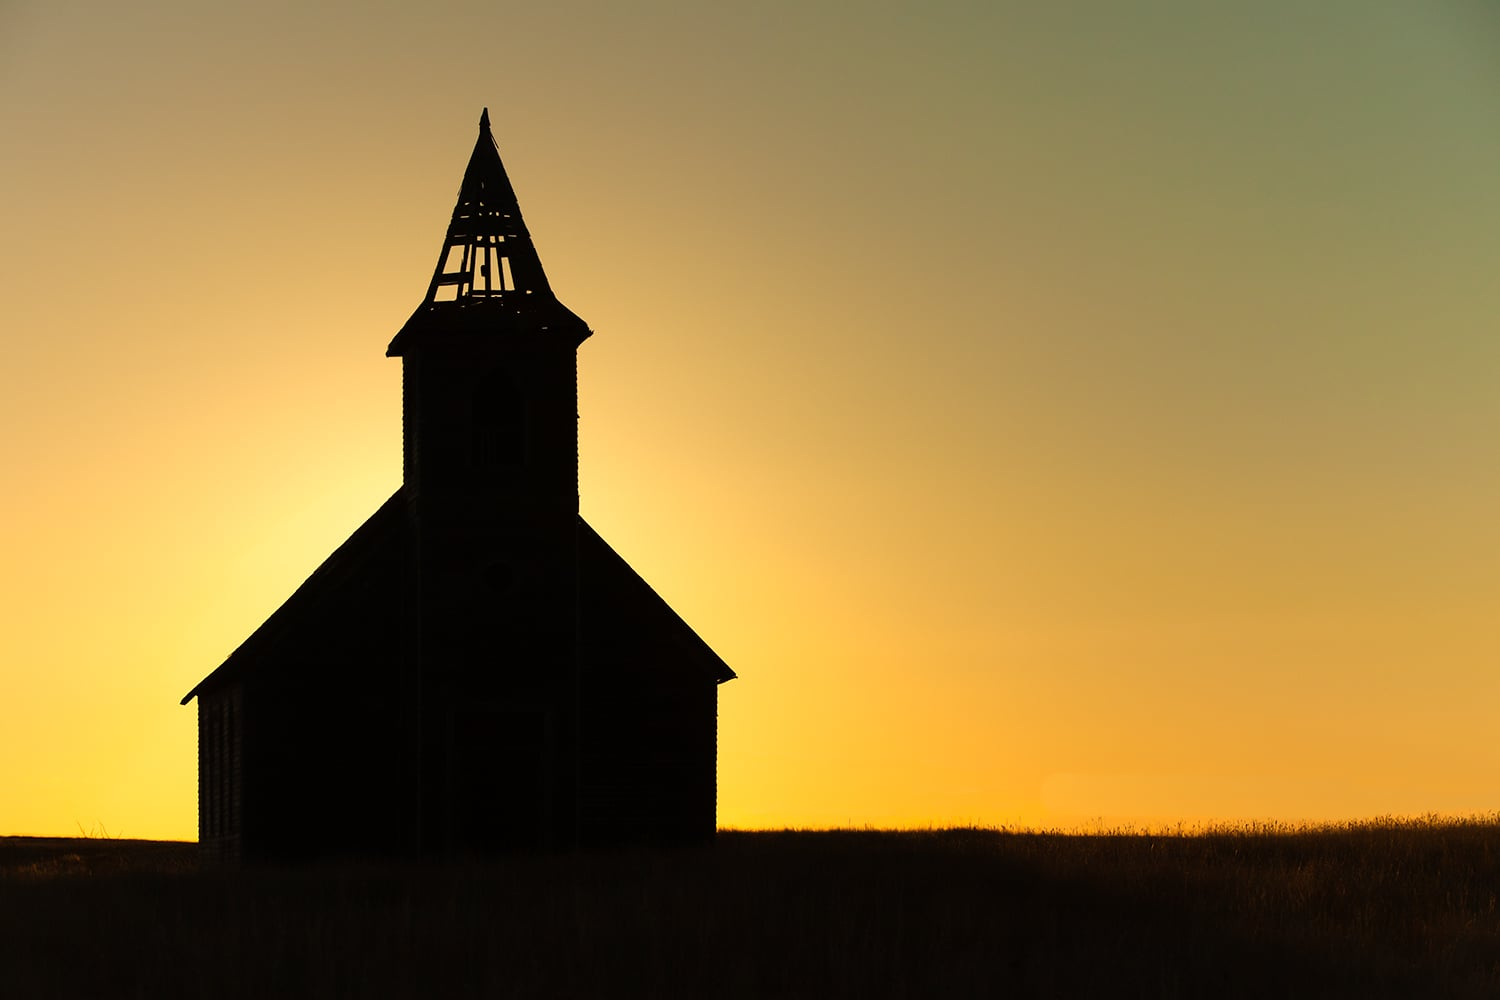 Abandoned Church Silhouette